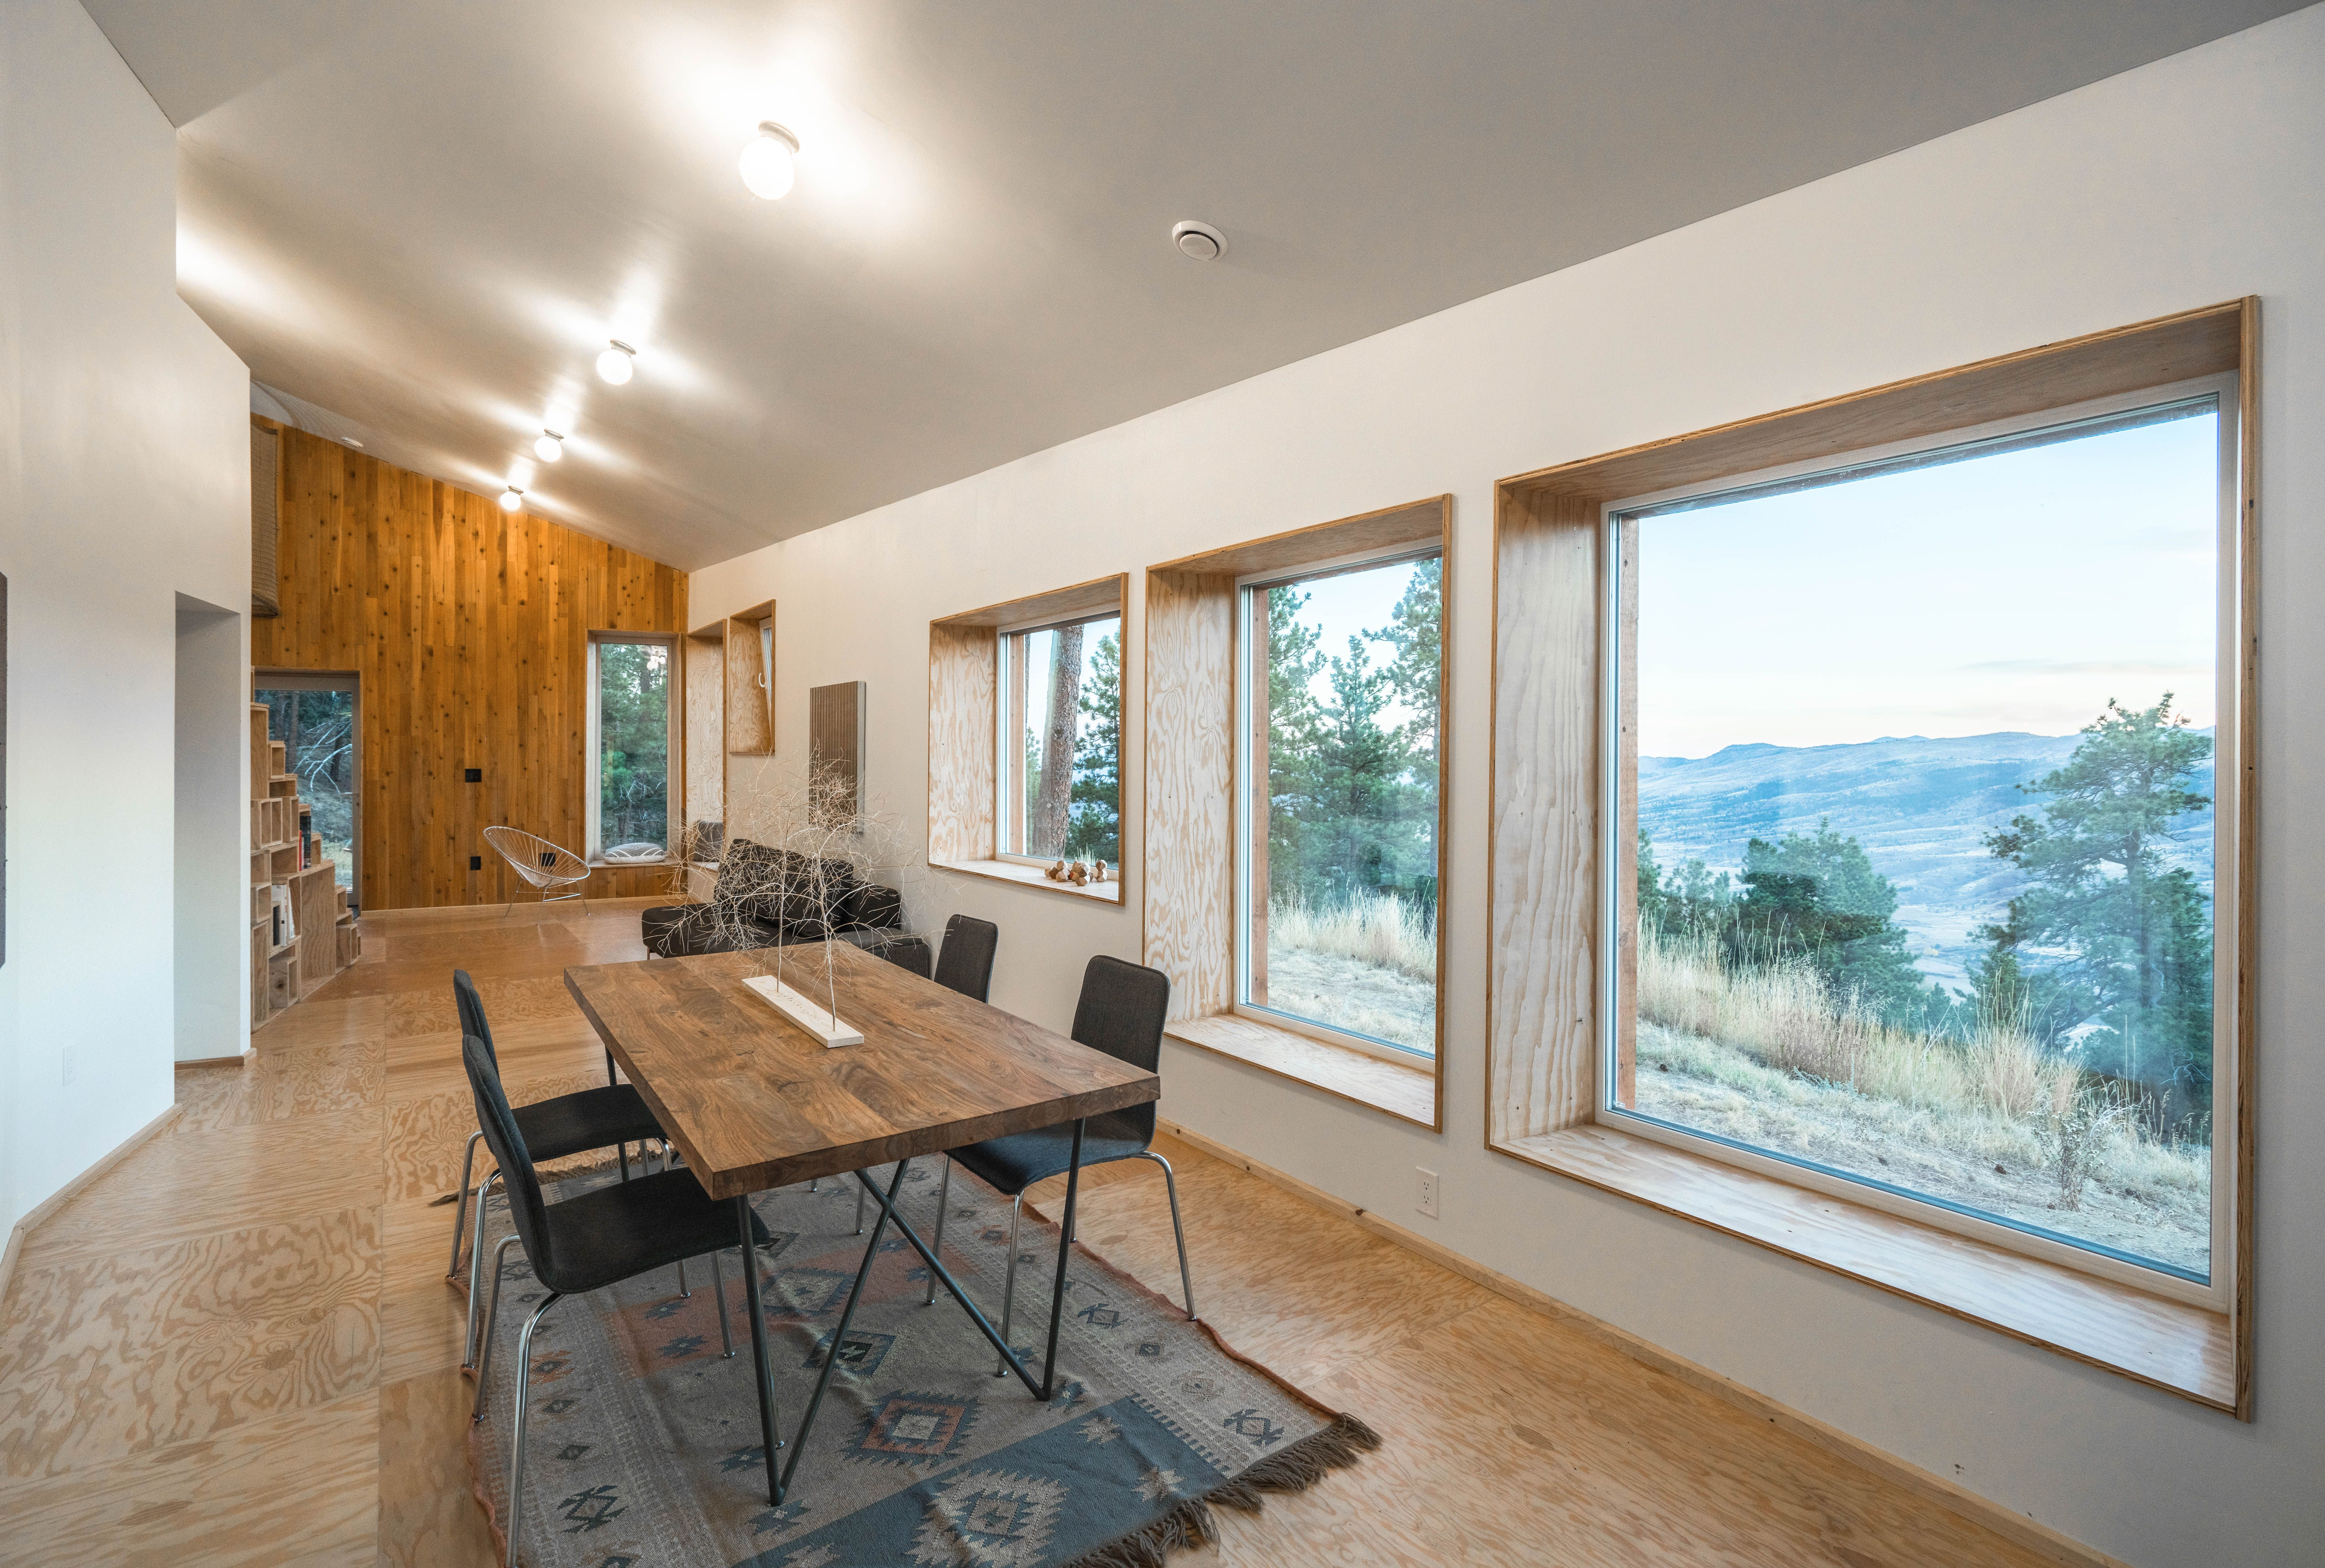 Passive house dining area looking out at beautiful mountains